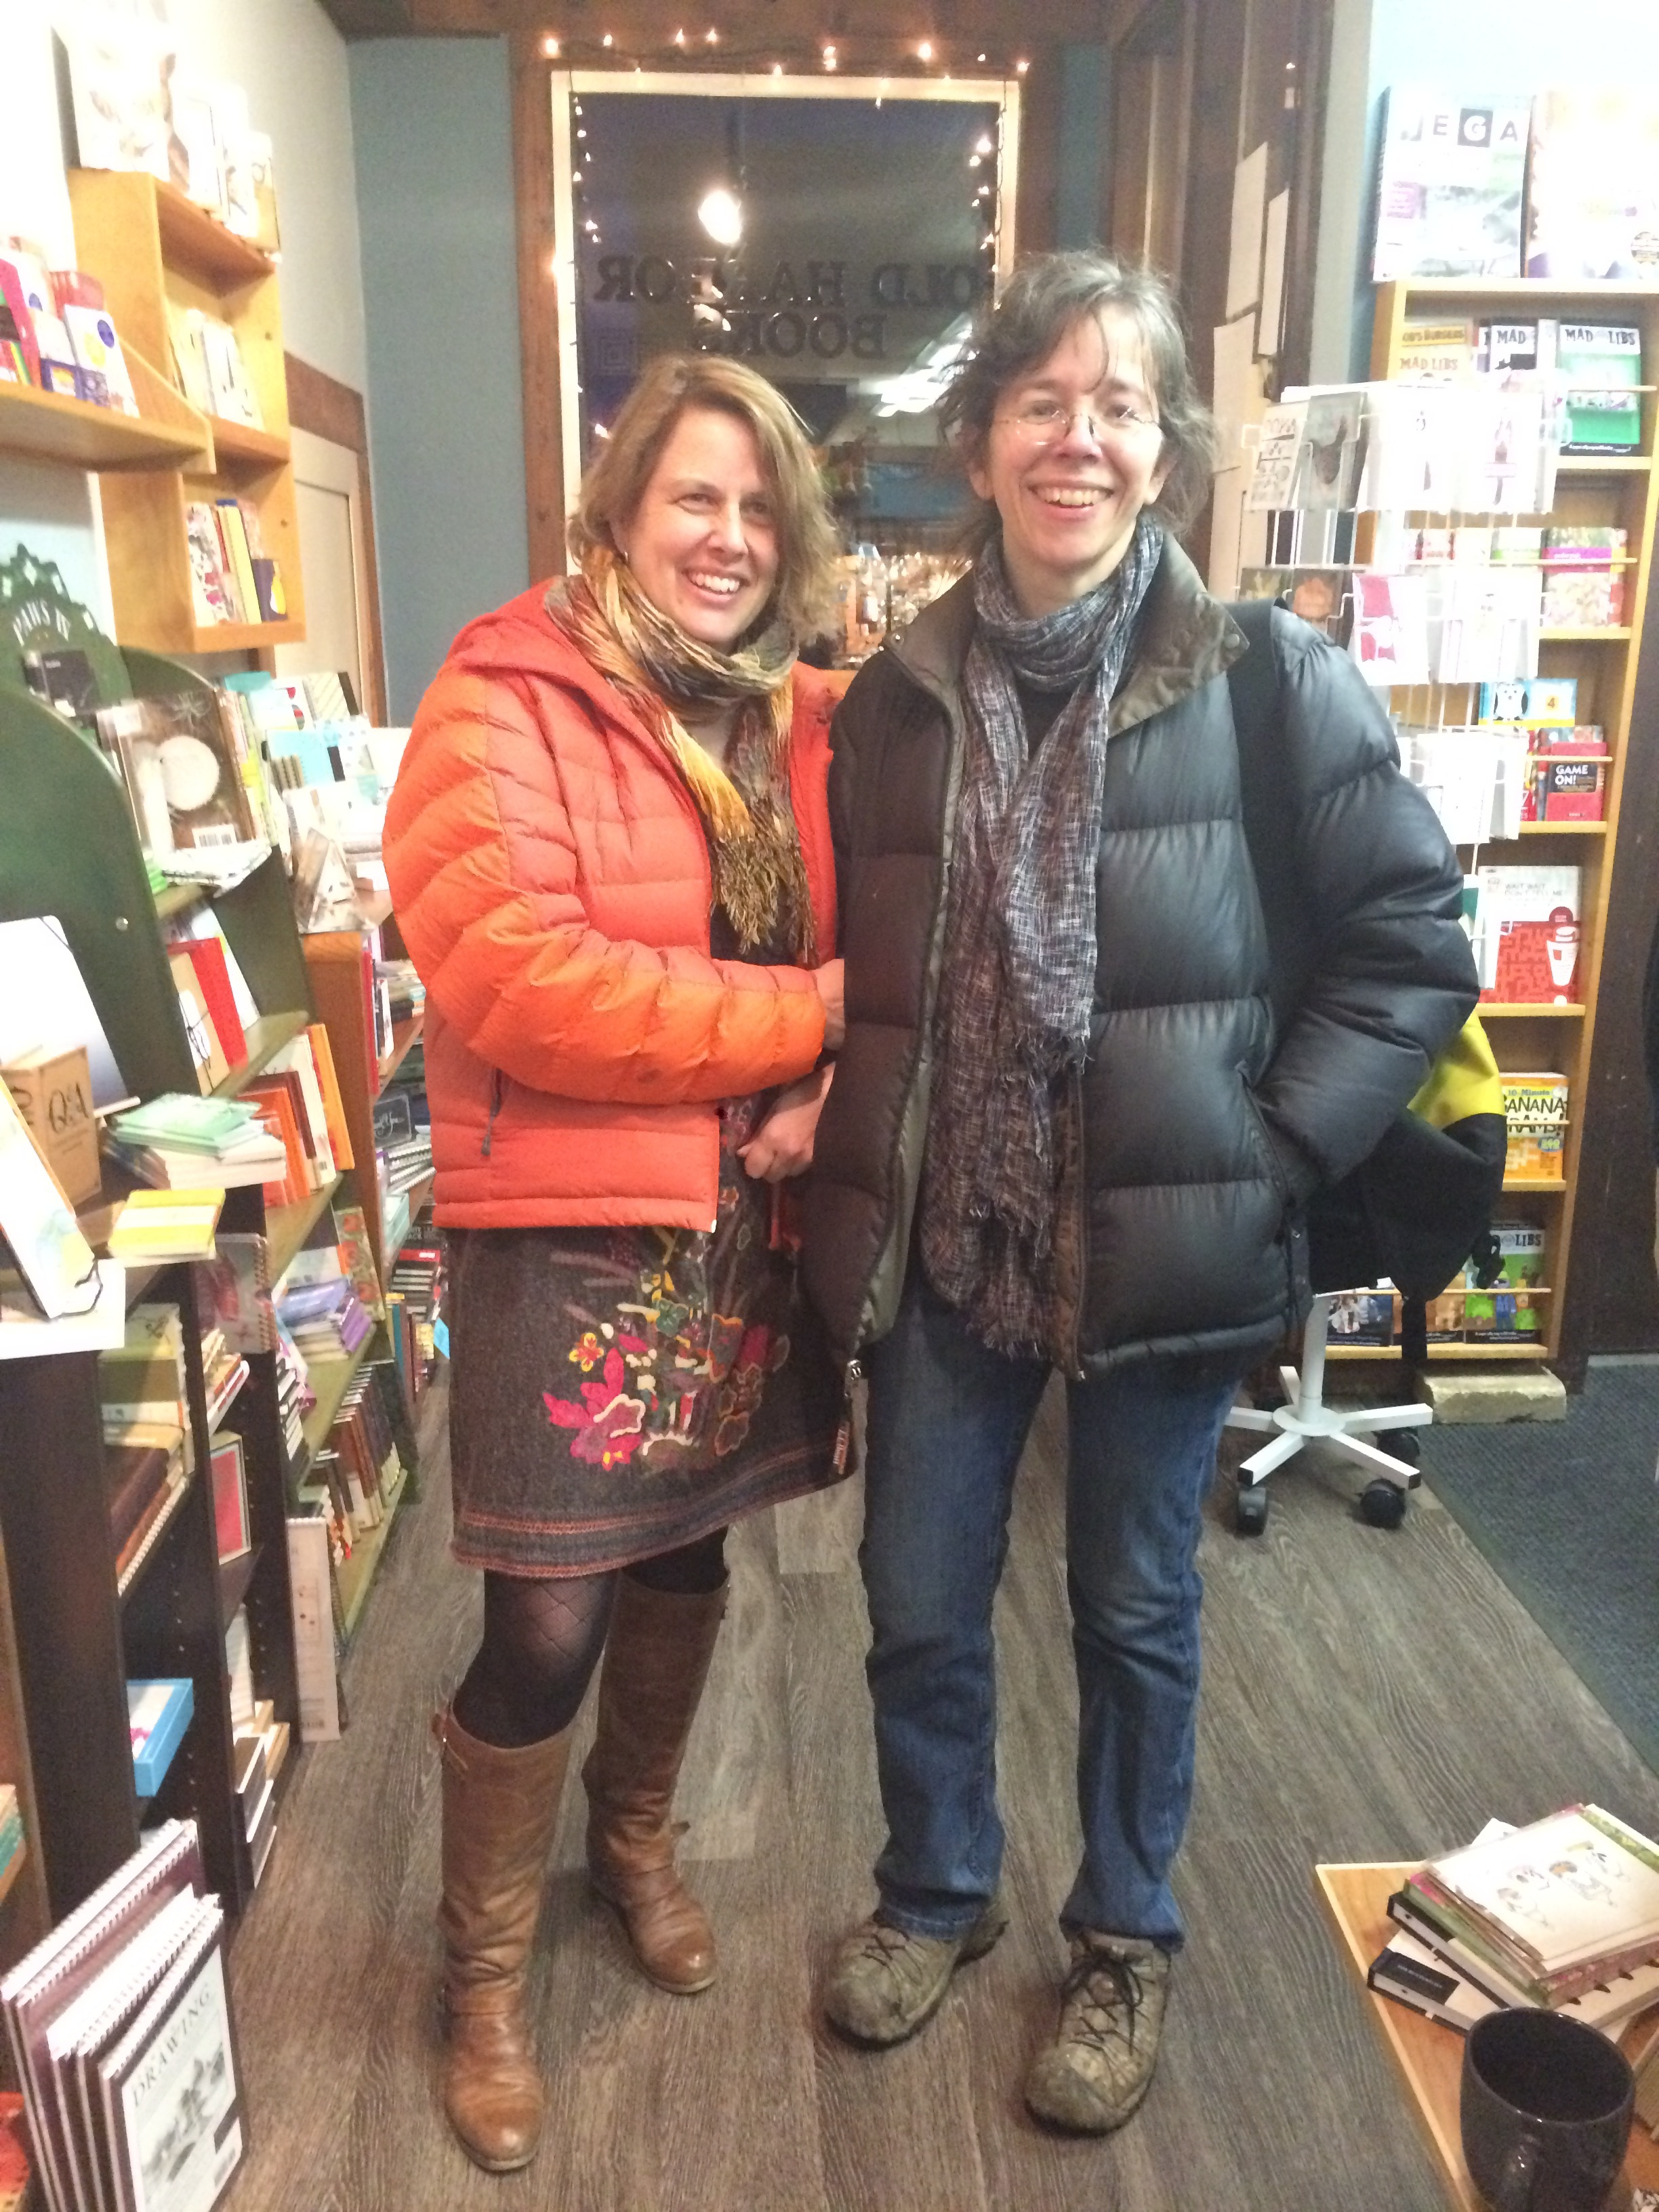 Me and Artist Rebecca Poulson, whose wood engravings are featured in The Smell of Other People's Houses. (Photo: Loren Waxman)